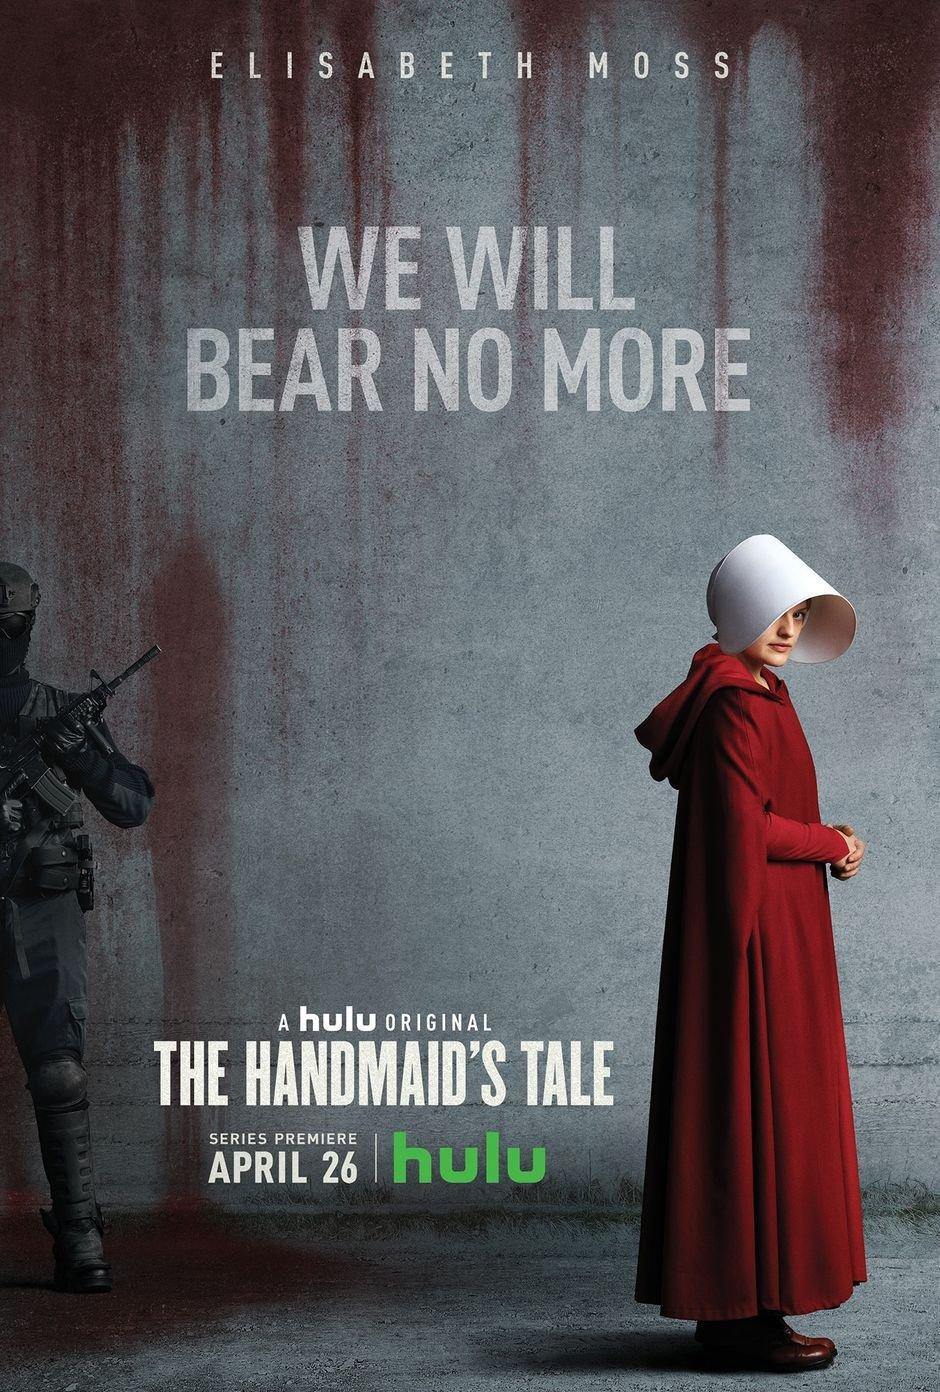 Minisode #3: Guess What? I'm a Woman Thing / The Handmaid's Tale - The Book Squad dissects the blessed fruit that is Hulu's The Handmaid's Tale. Hear our thoughts on the show's political timeliness and its feminist wins (and shortcomings). We have lots of feelings about Serena Joy, as well as the fabulous red cloaks, and we're weirded out that Elisabeth Moss is a Scientologist. Spoiler alert: people still really misunderstand feminism, but we try to get their minds right. Under His eye.